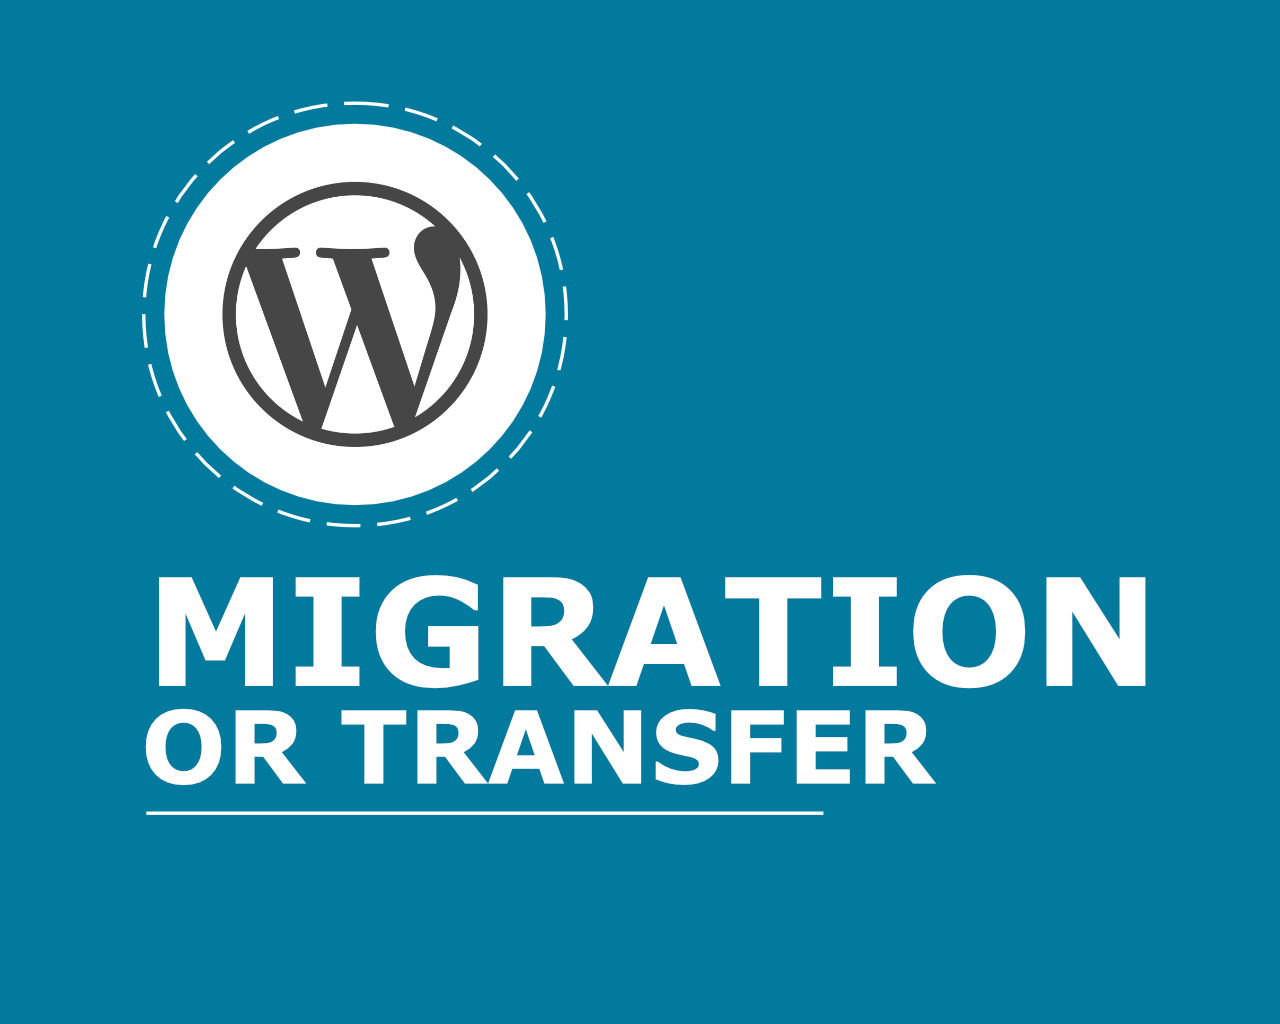 WordPress Migration or Transfer by jassdesigngroup - 105763